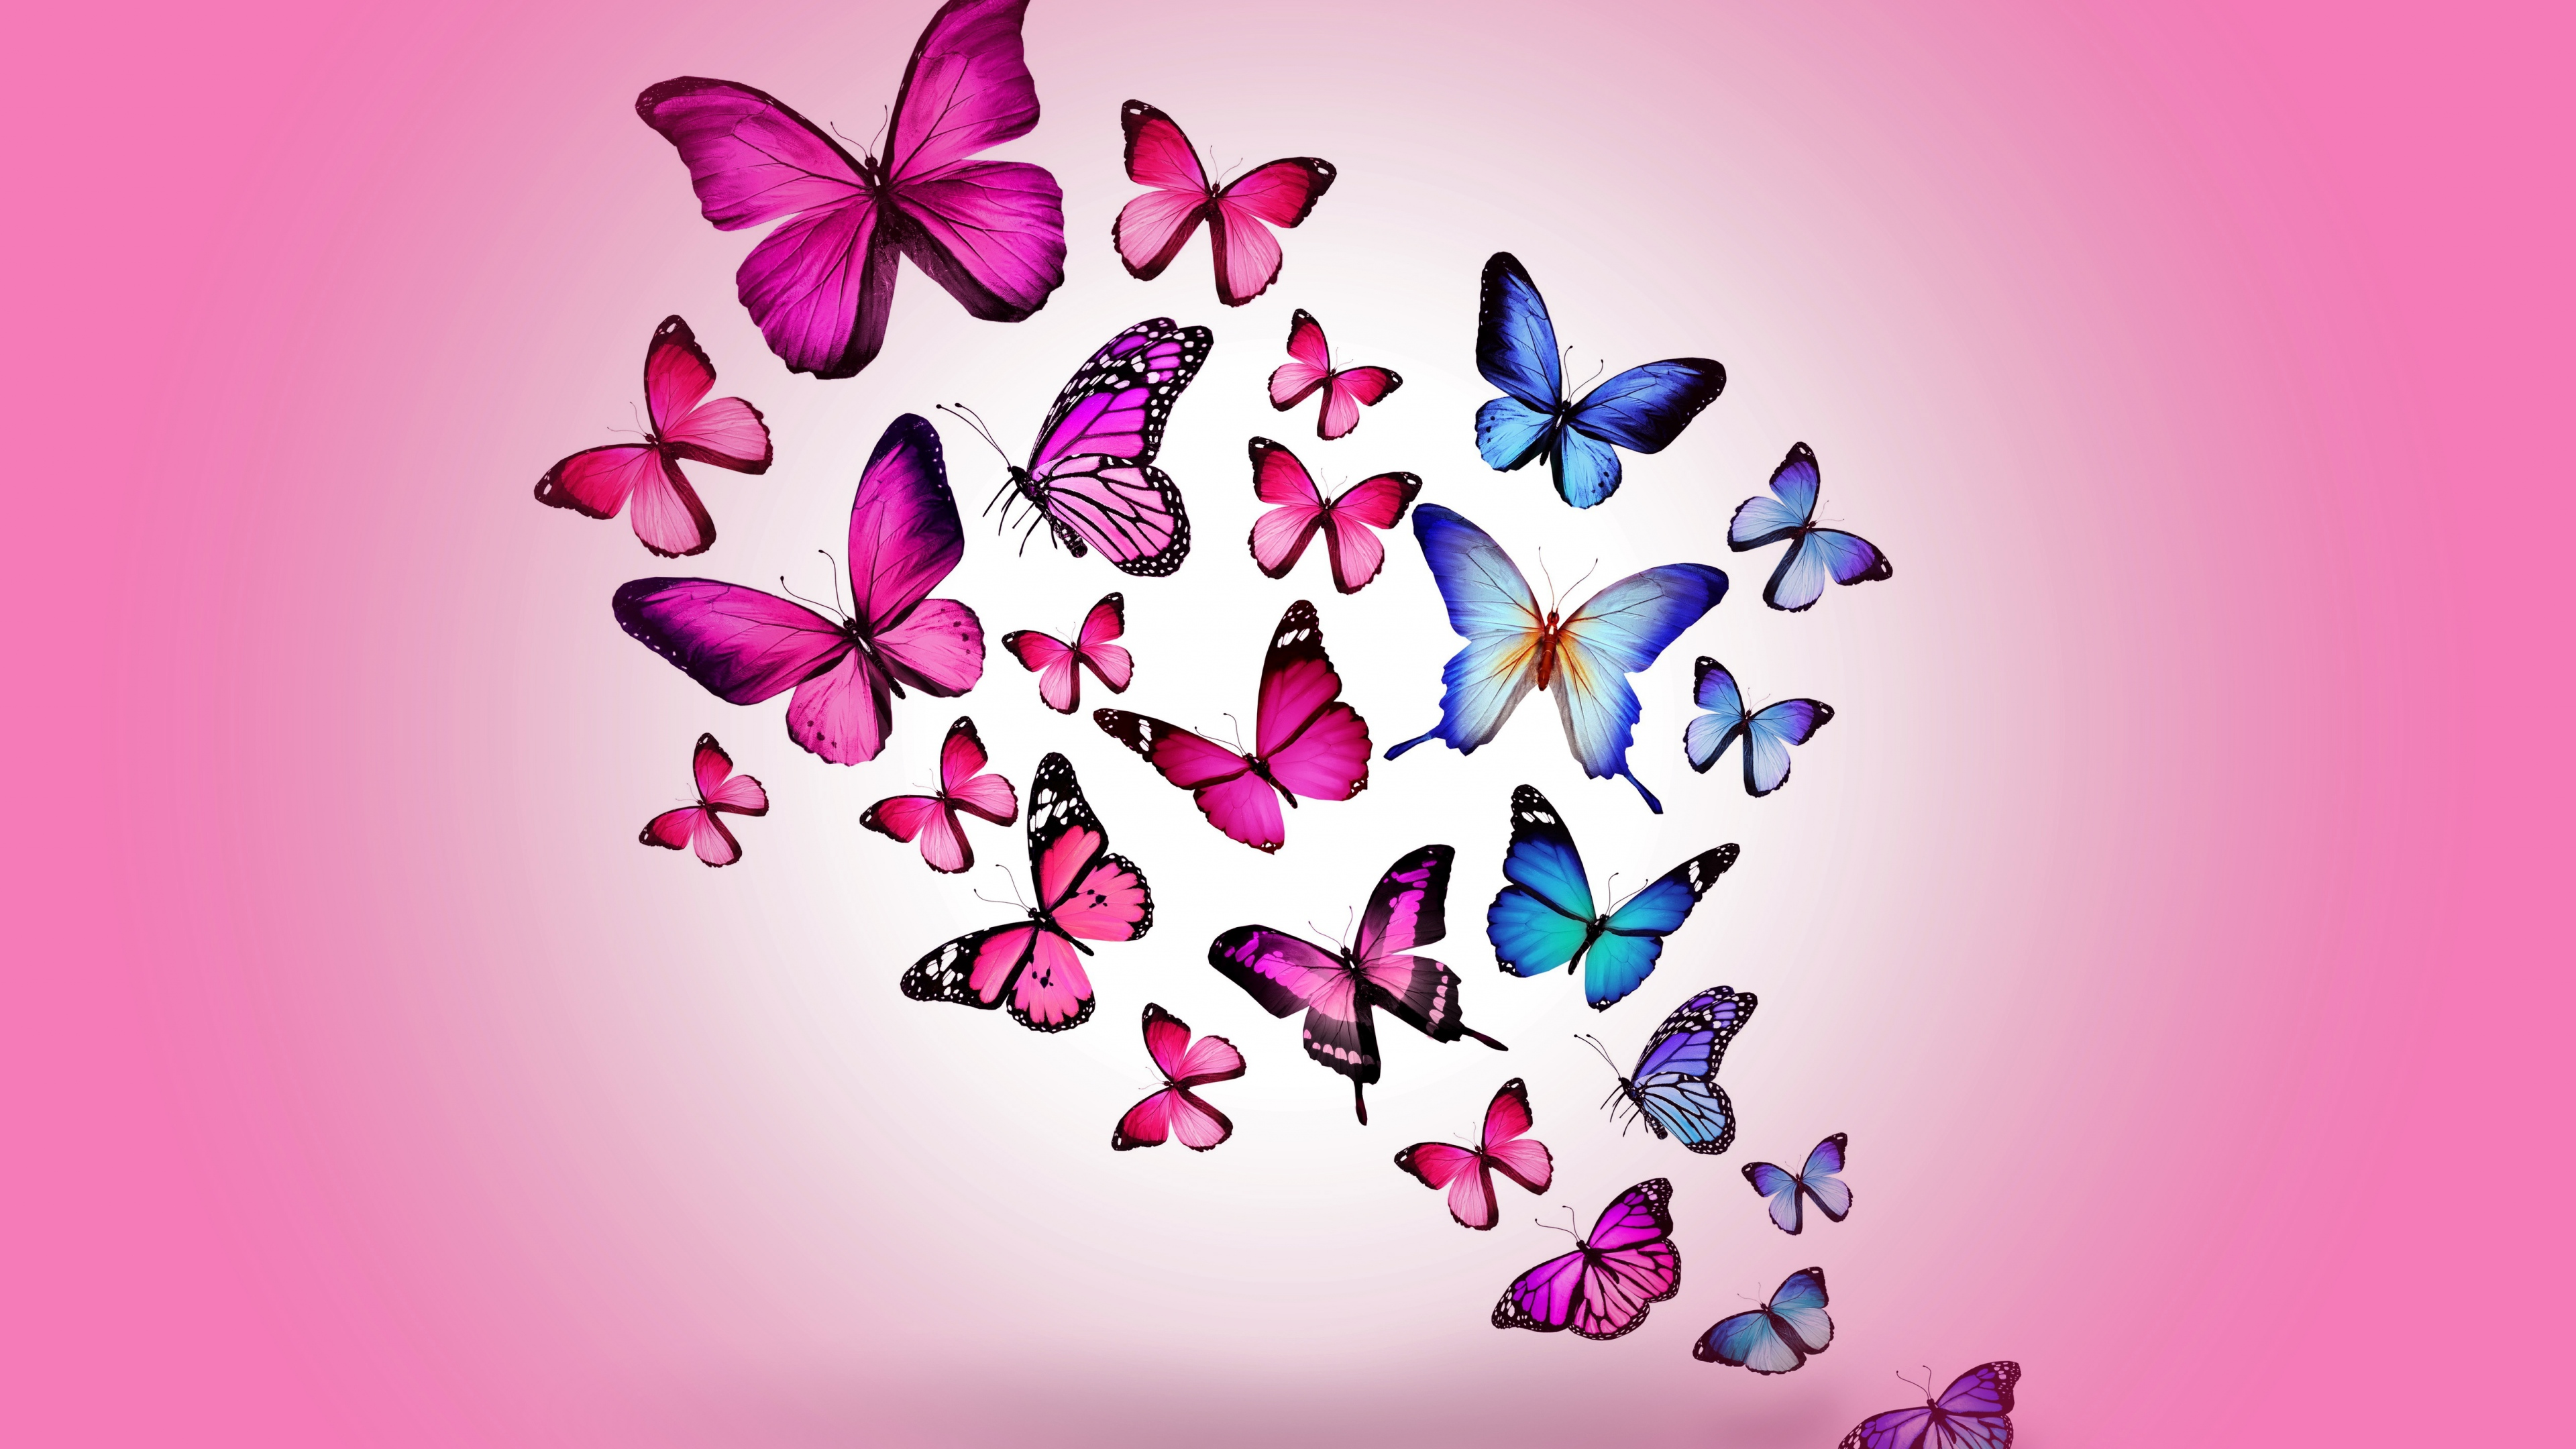 Butterfly Backgrounds download 3840x2160